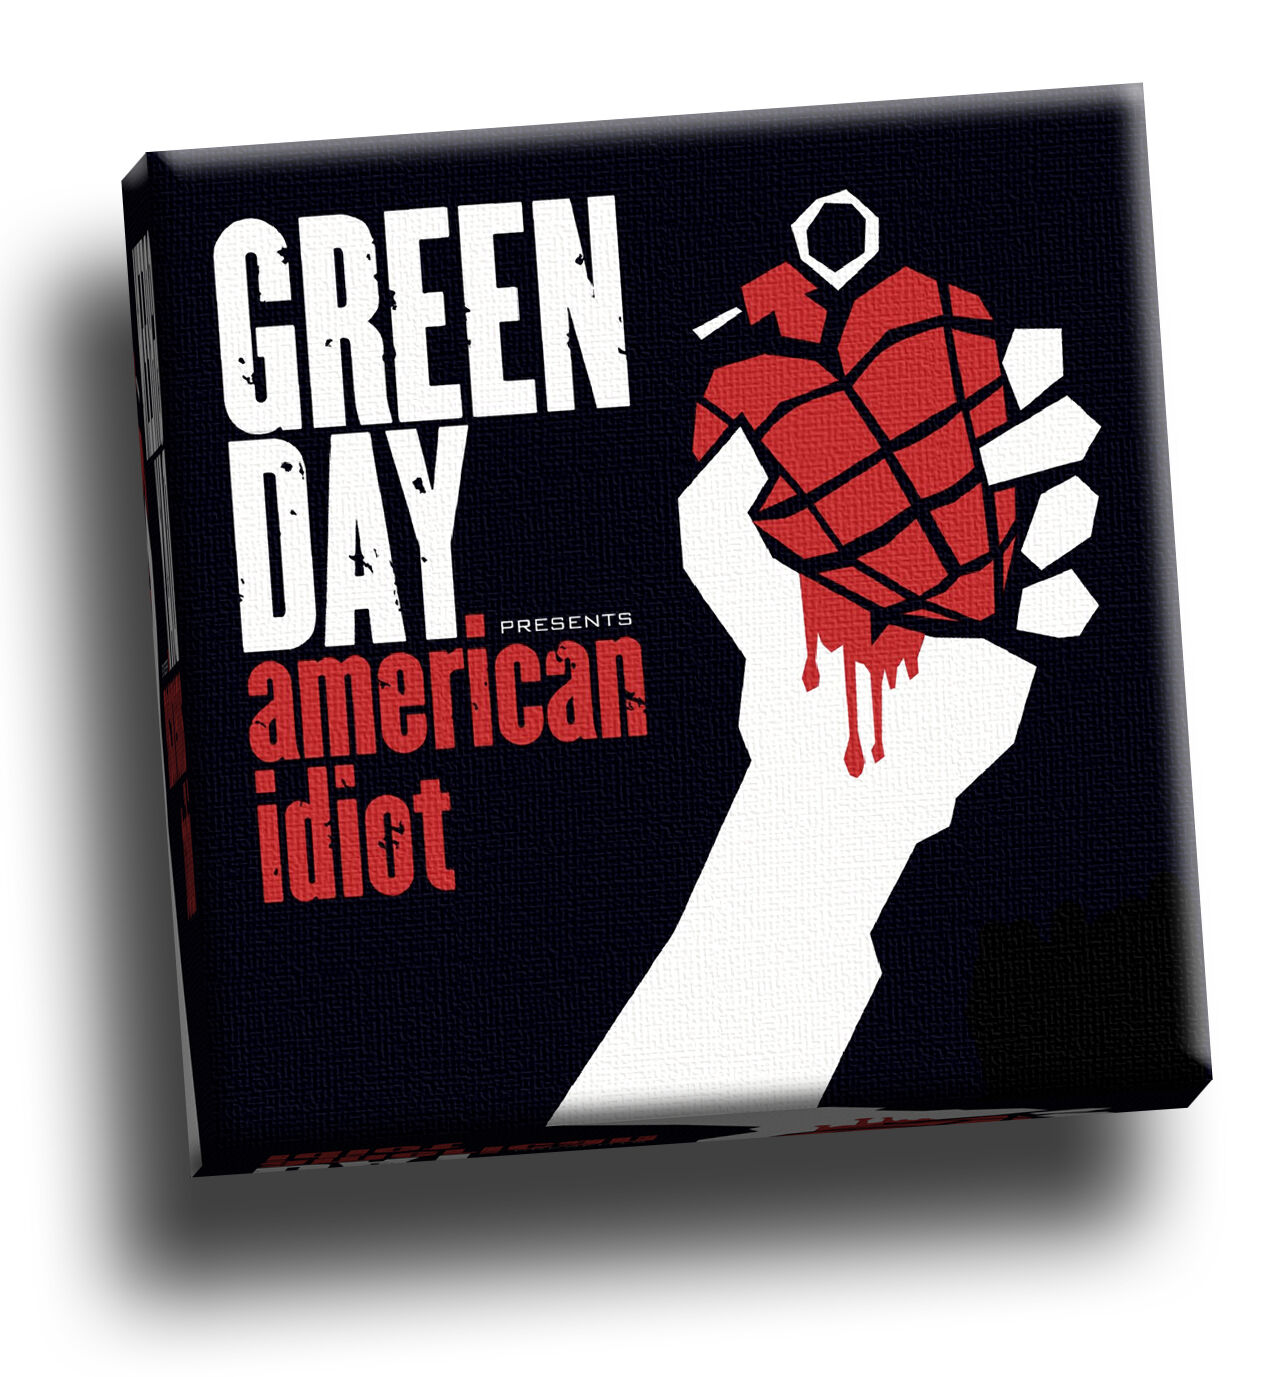 Grün Day - American Idiot Giclee Canvas Album Cover Picture Art